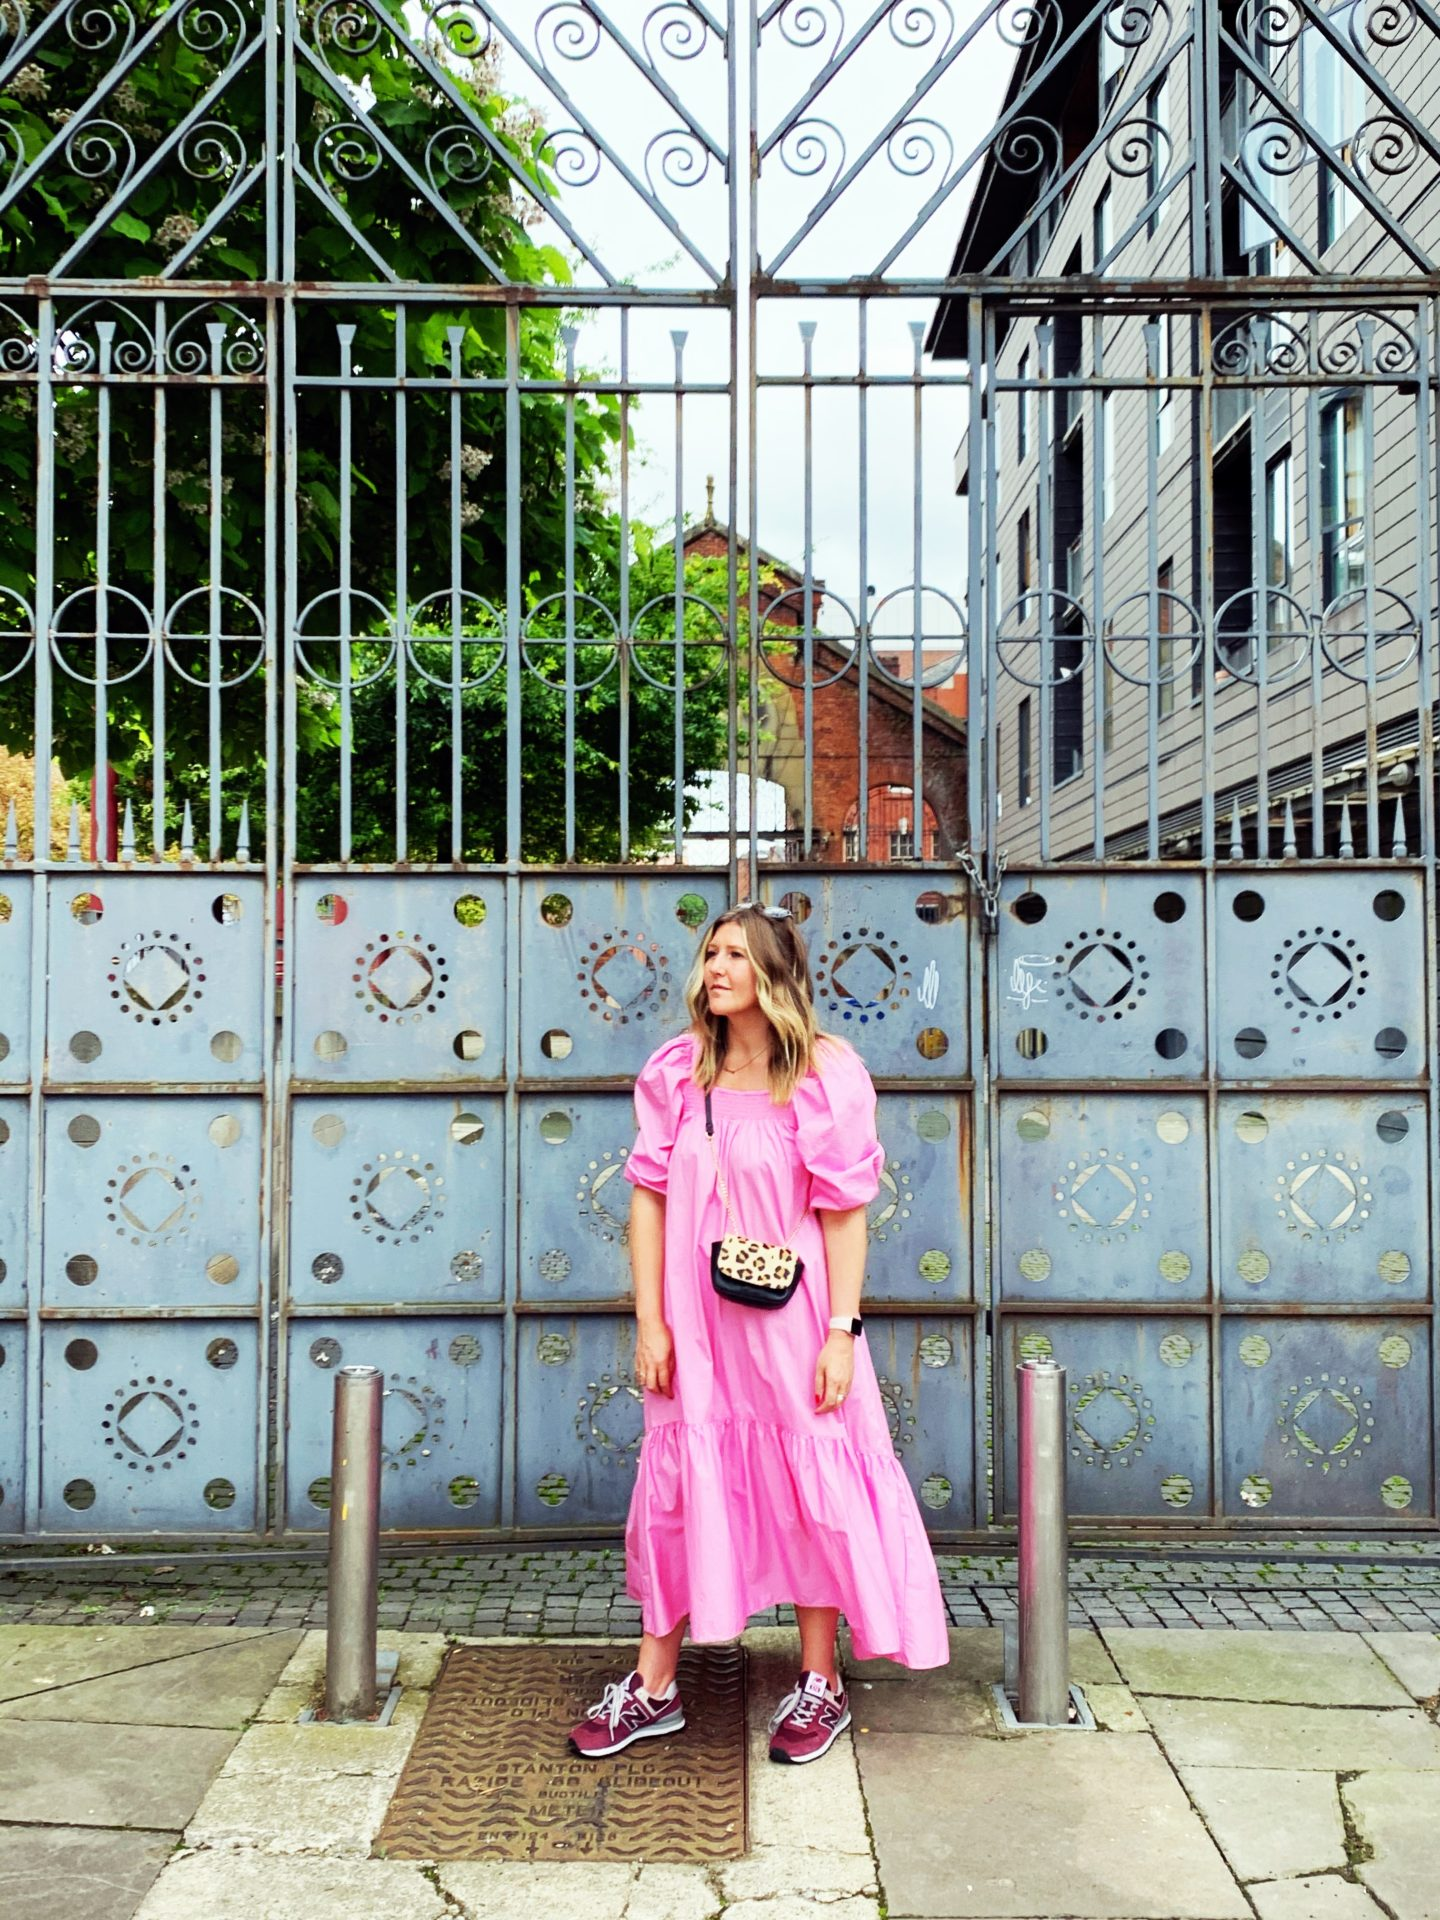 What to wear for Dinner & Drinks in the garden